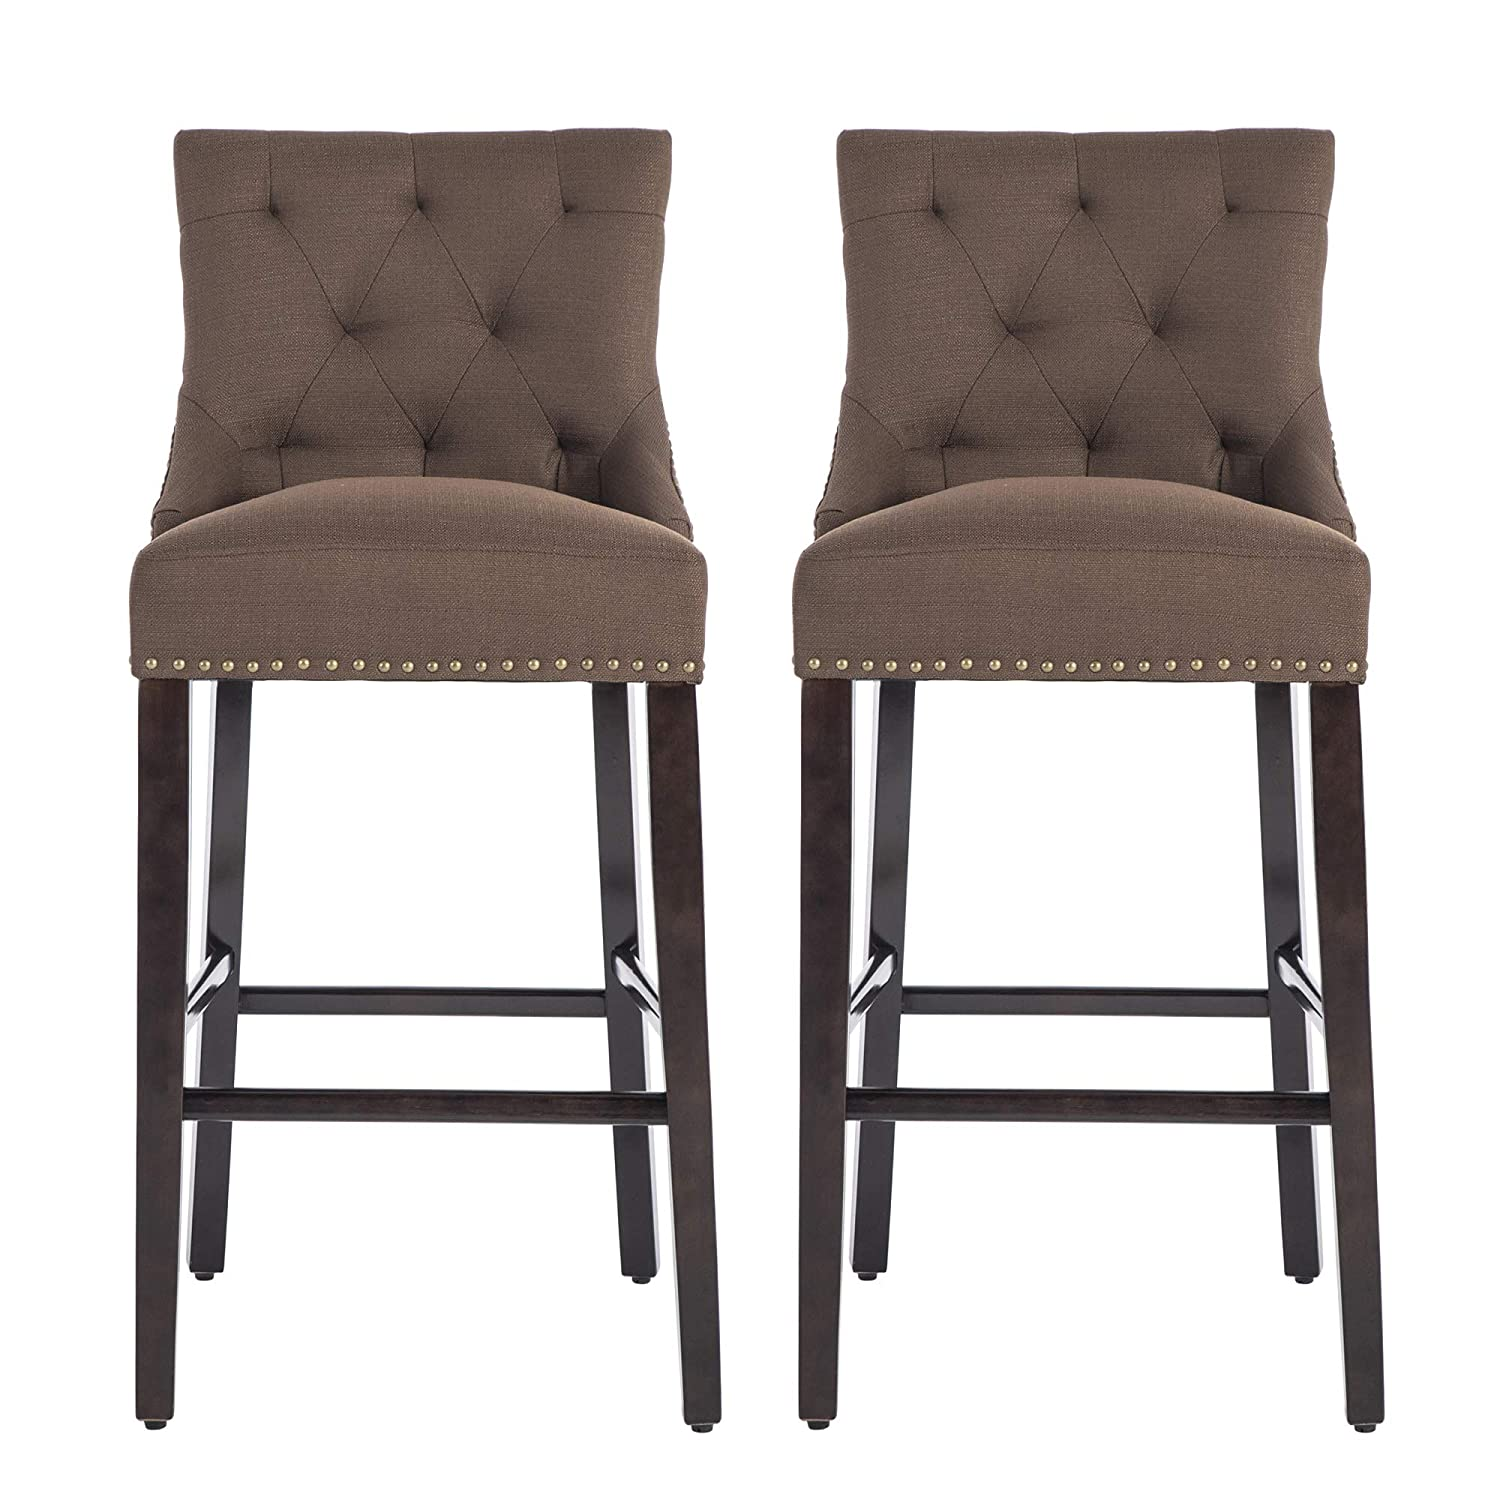 NOBPEINT Roll Over Image to Zoom in 30 inch Bar Stools with Polished Nailhead Wood Legs in Coffee,Set of 2